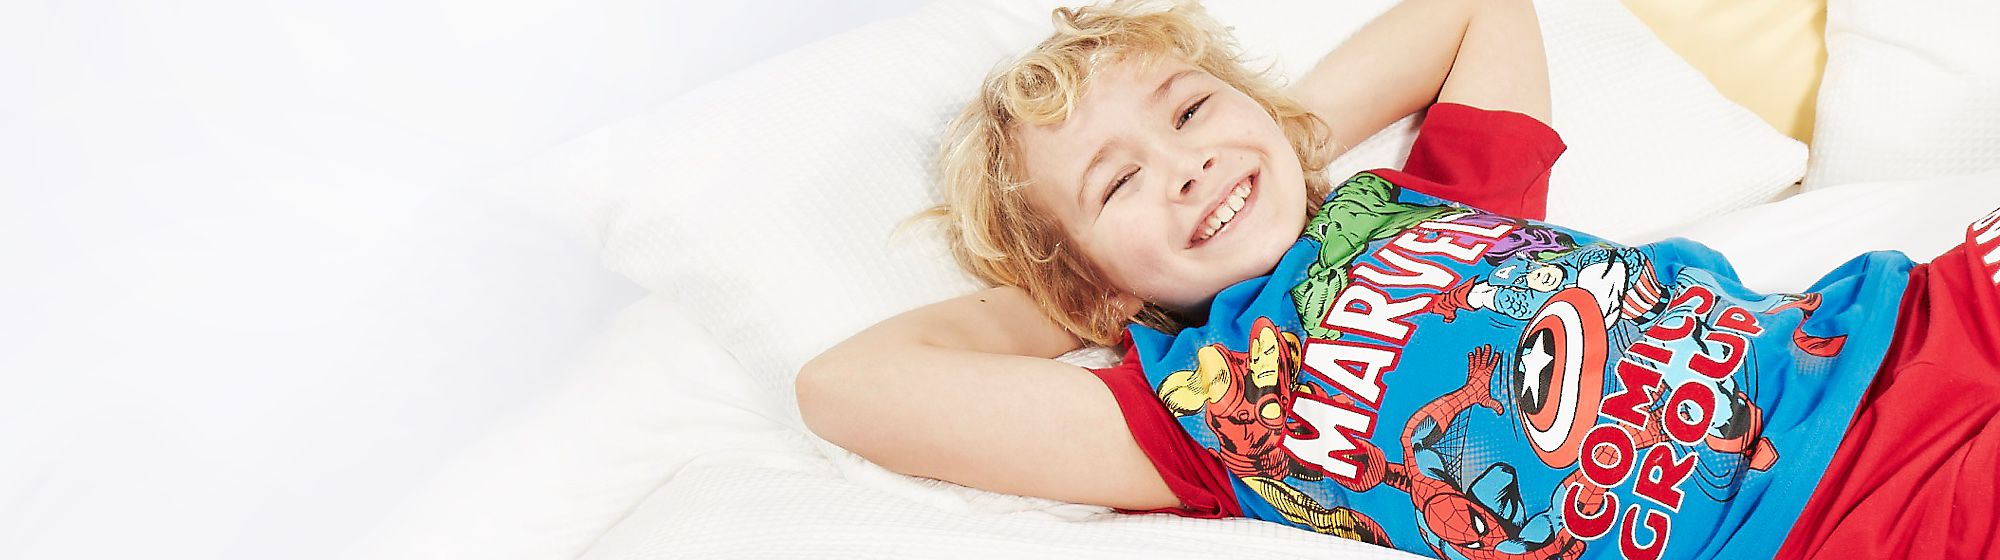 Nightwear & Pyjamas Rise and shine in style with our range of kids nightwear including pyjamas, dressing gowns and slippers. Sweet dreams guaranteed!